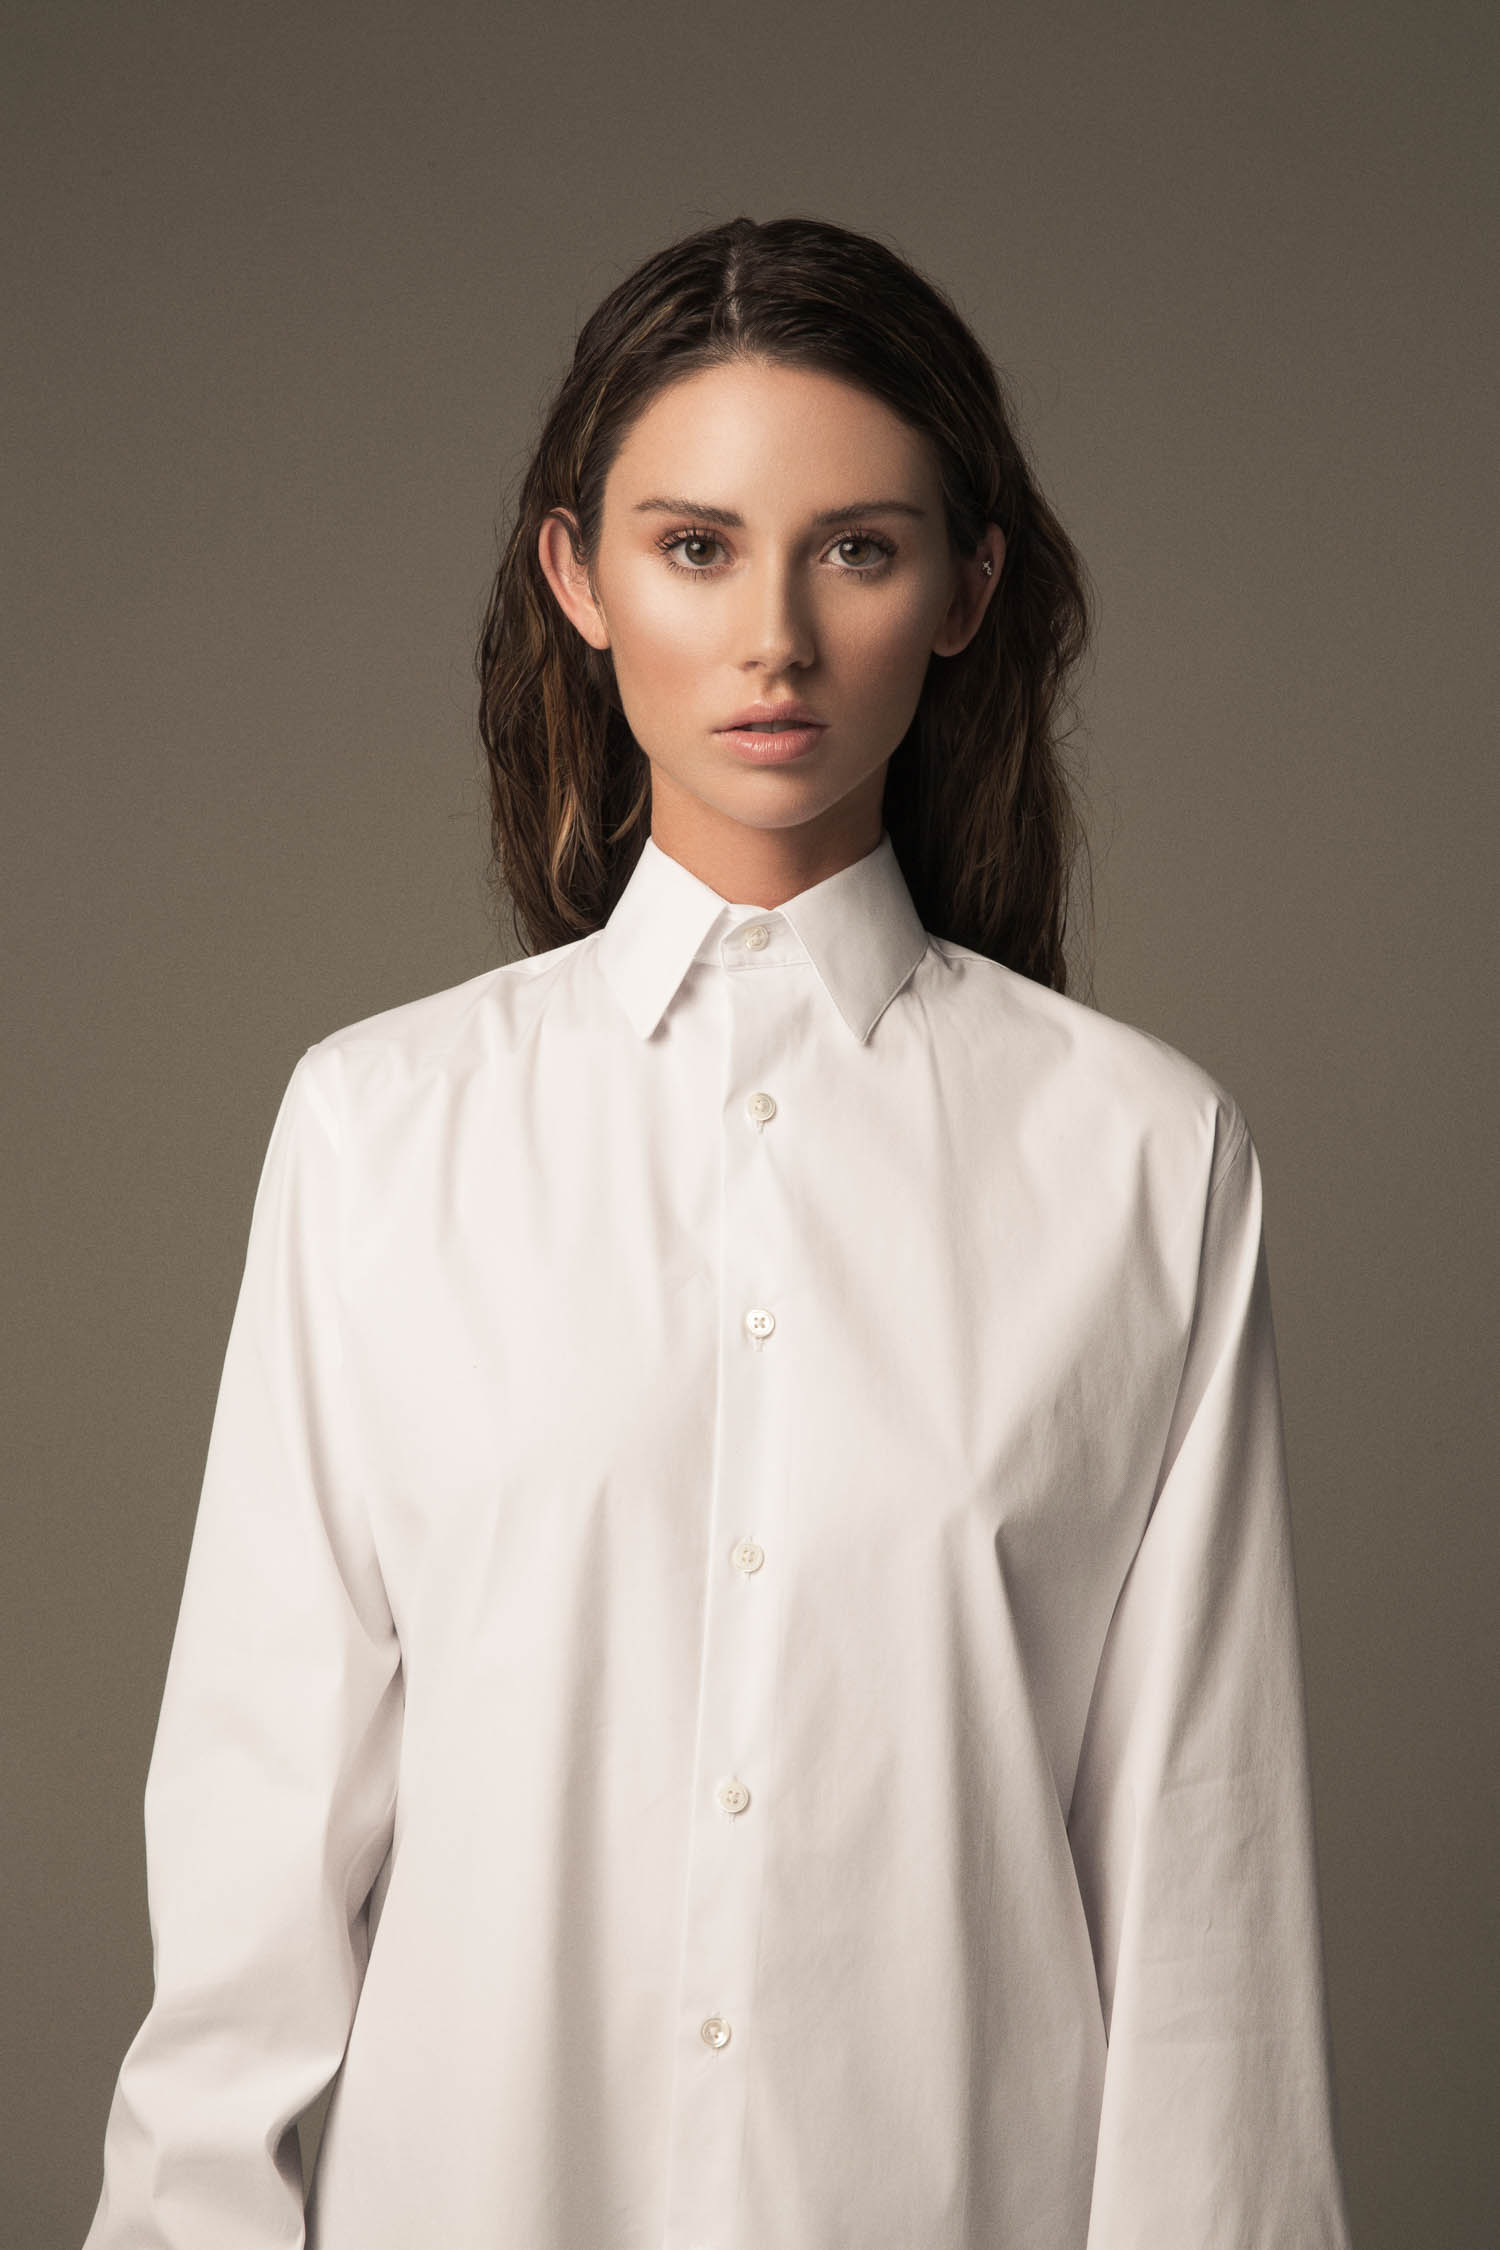 Portrait of a woman in a white men's dress shirt.